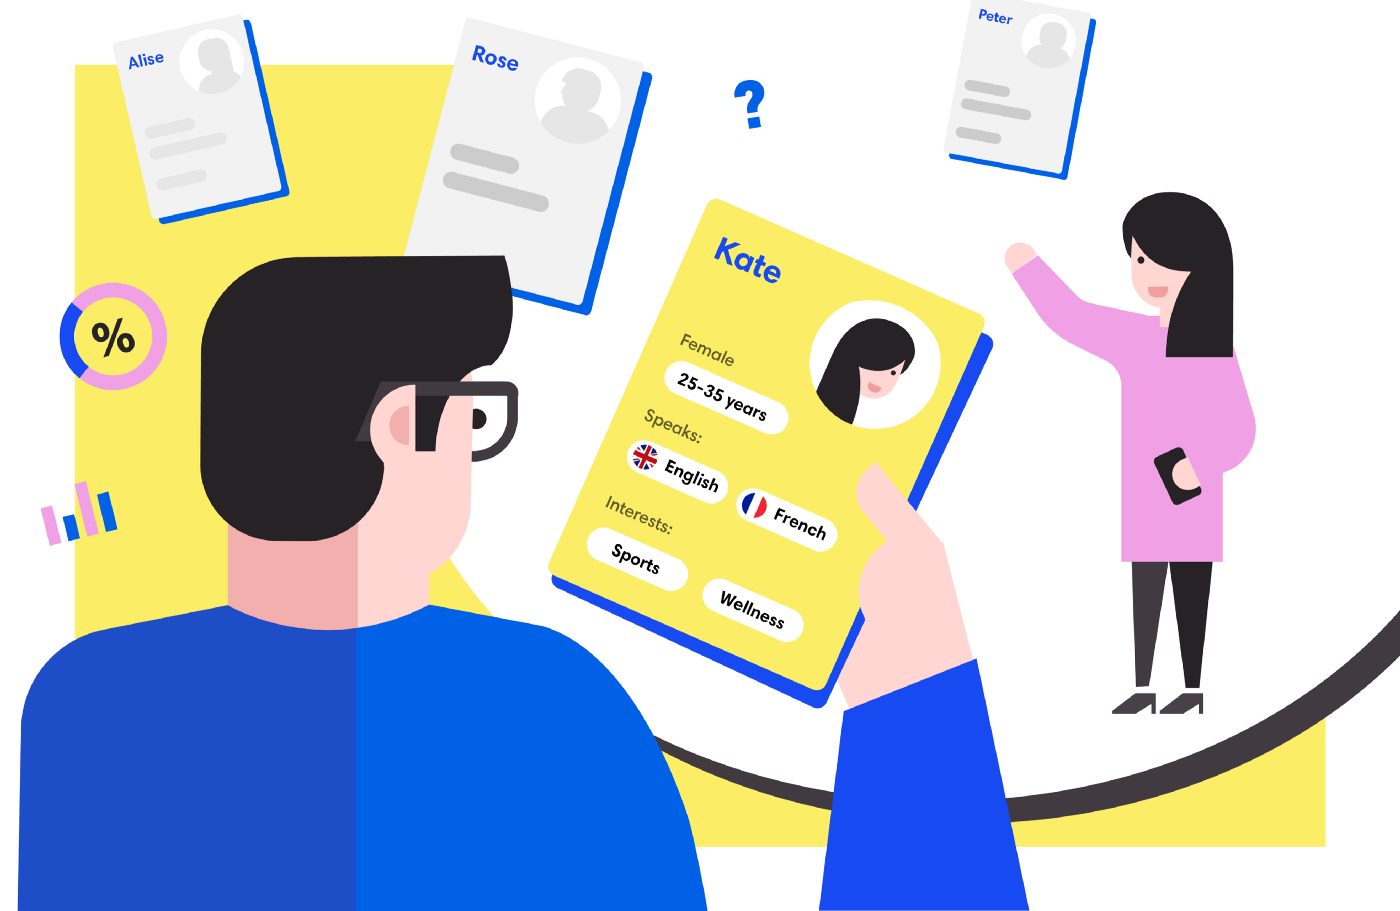 Image of an illustration of a UX designer working on a persona